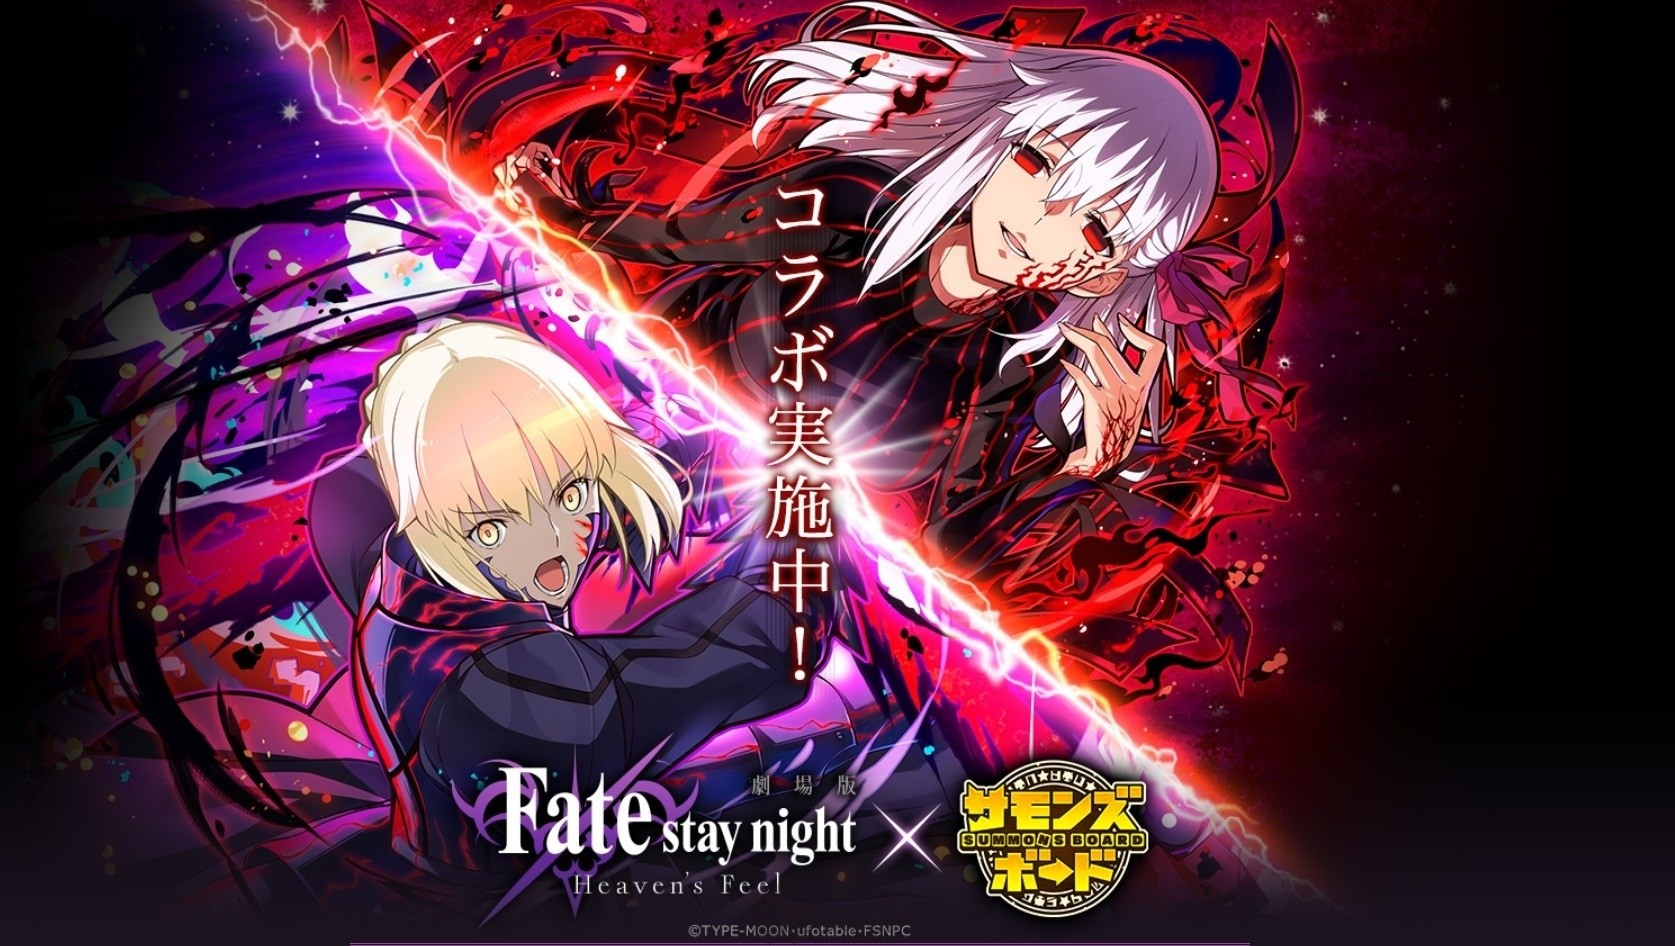 Summons Board X Fate/stay night: Heaven's Feel Collaboration Starts Today!